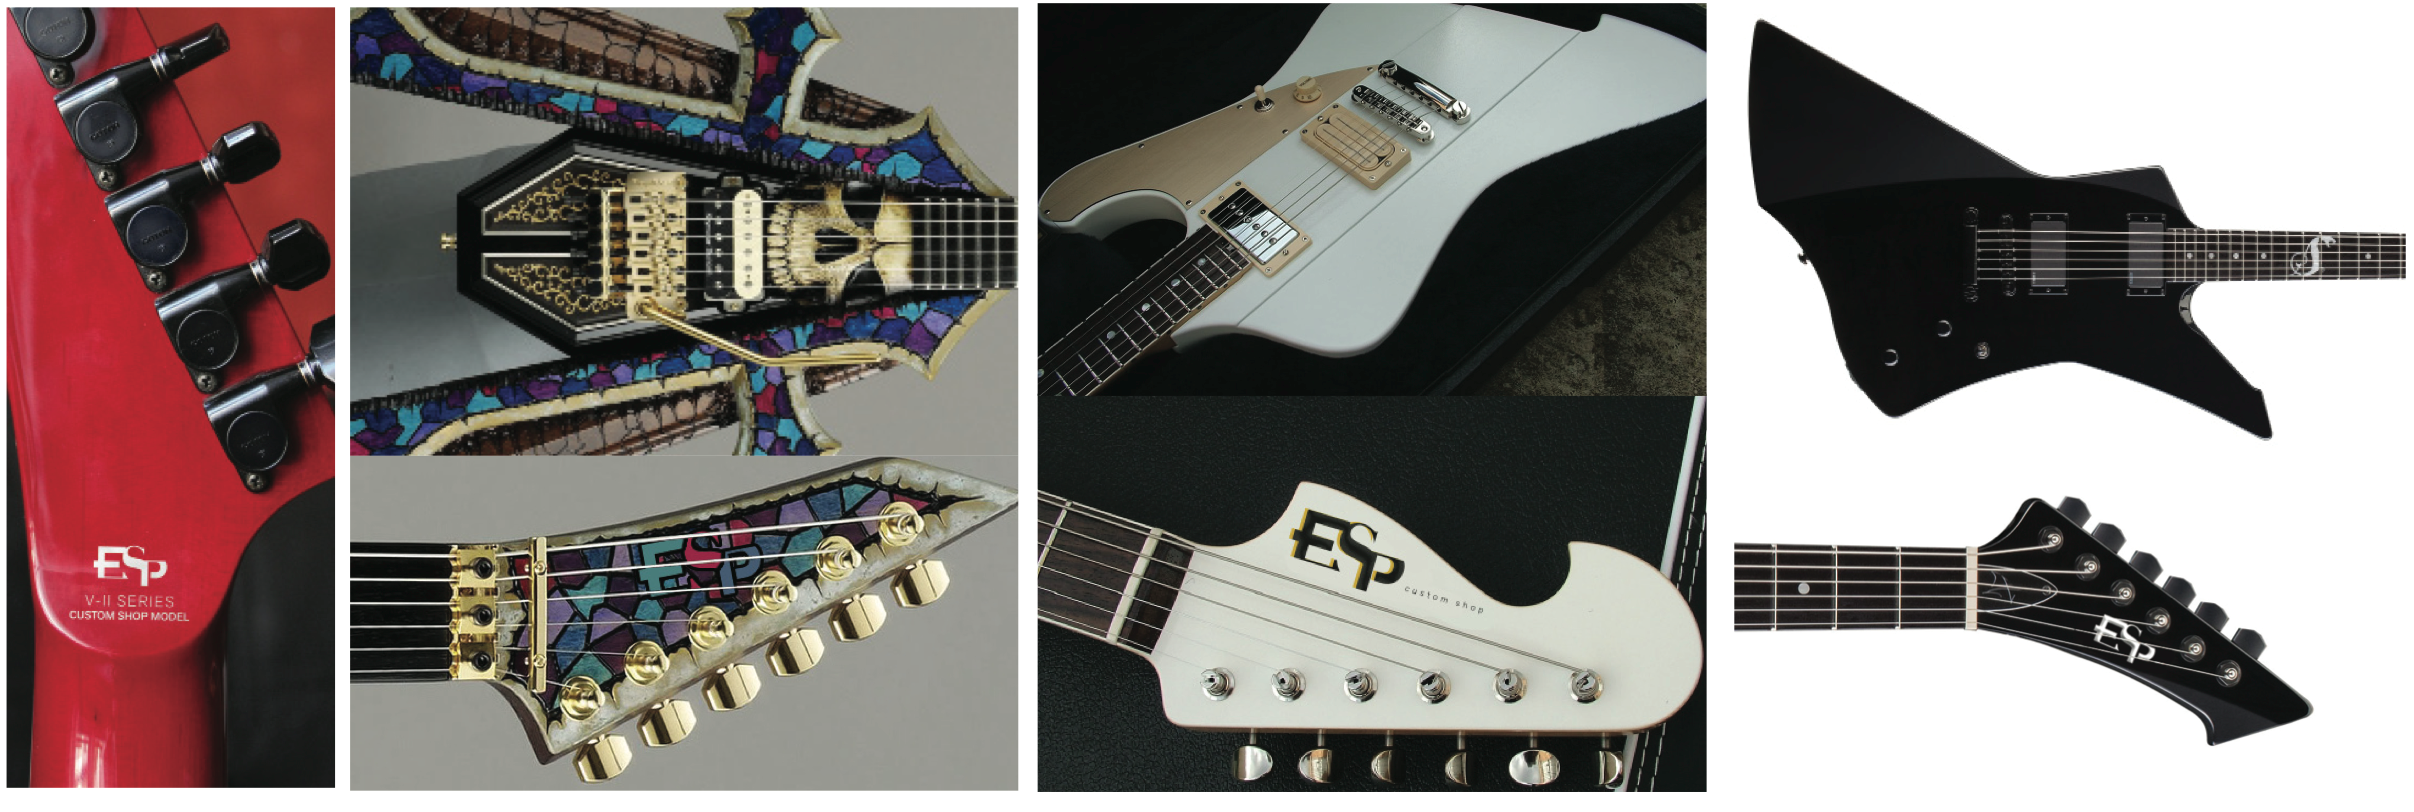 Because the guitar would mostly be in a horizontal position when it is played, the ESP logo will always be in a horizontal position. The design must stay the same size, but can change color or material based on the design of the guitar. Options include small strokes, offsets (must not exceed a third of the width of letterstroke), and chrome plating. The choice of color and material would be at the discretion of the custom shop worker and the client  The logo may also be modified as long as it does not clash with the material and color of the custom design. For example, the design of the ESP Amakusa involves a mosaic pattern, therefore the logo may also be a mosaic.